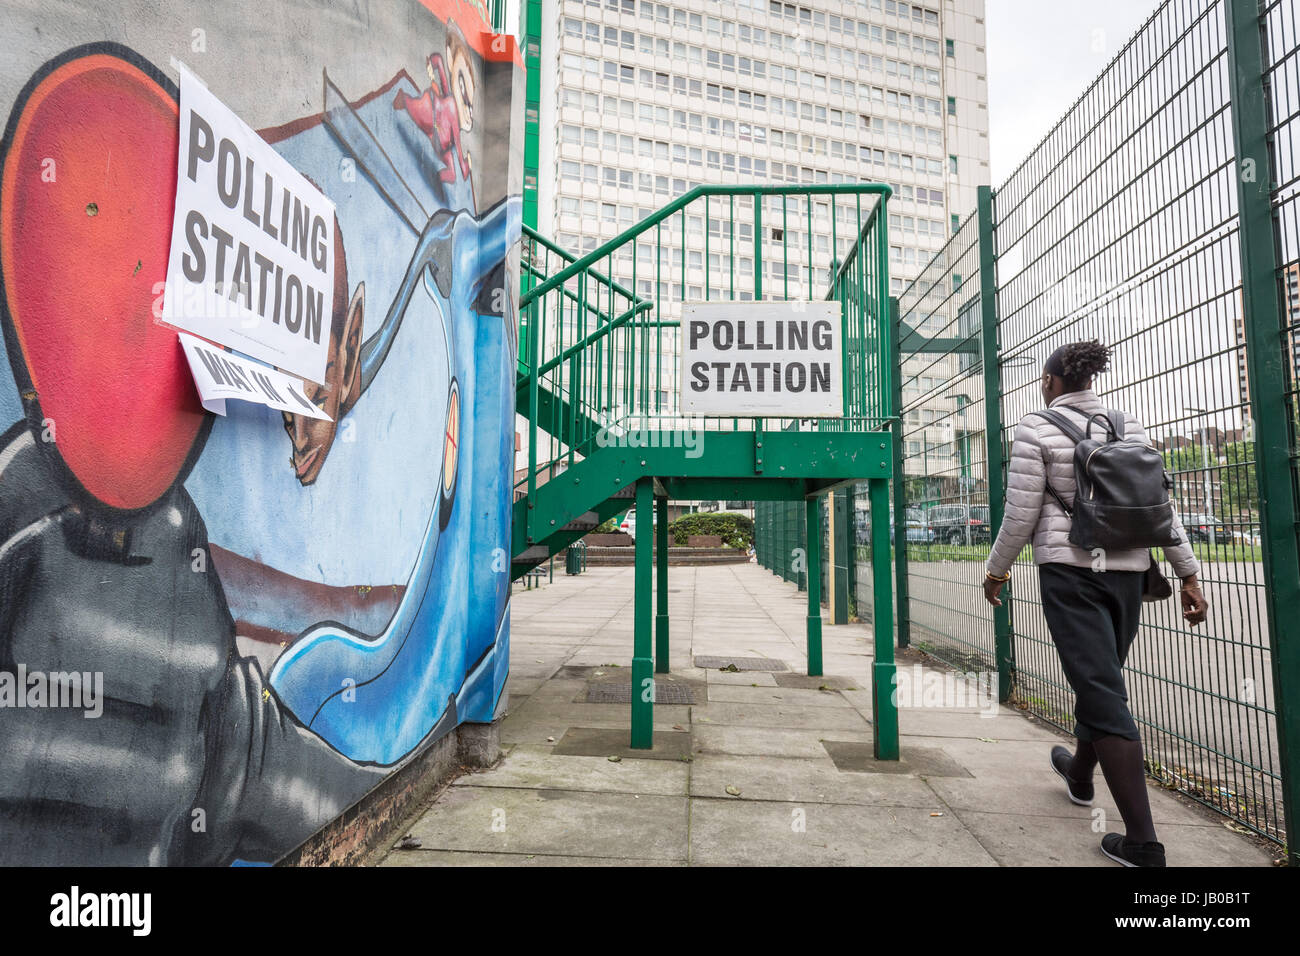 London, UK. 8th June, 2017. Riverside Youth Club polling station in Deptford. General Election Polling Day in South - Stock Image